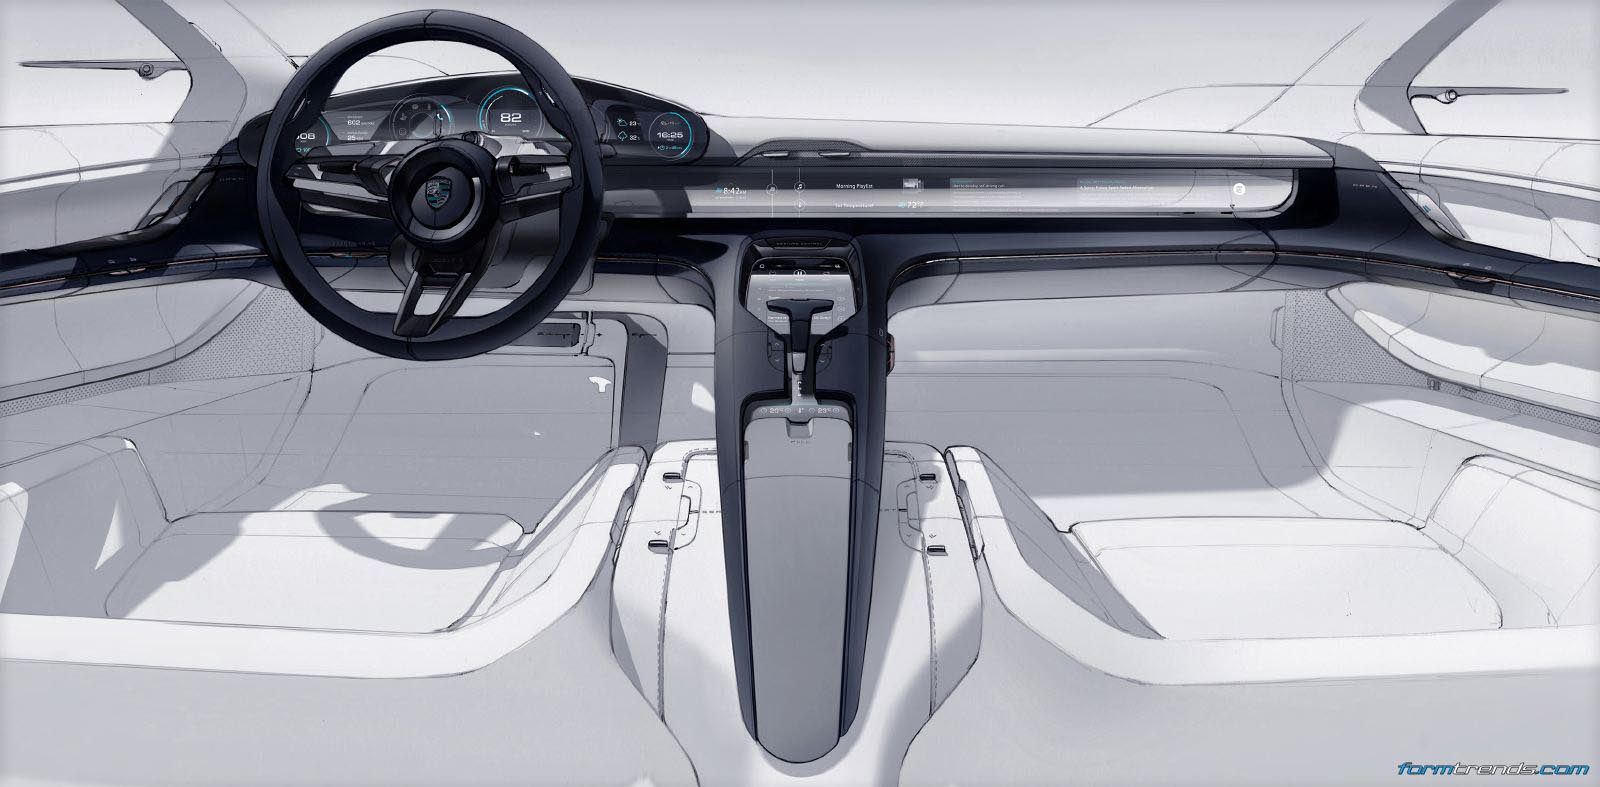 porsche mission e interior sketch by felix godard car interior pinterest interior sketch. Black Bedroom Furniture Sets. Home Design Ideas